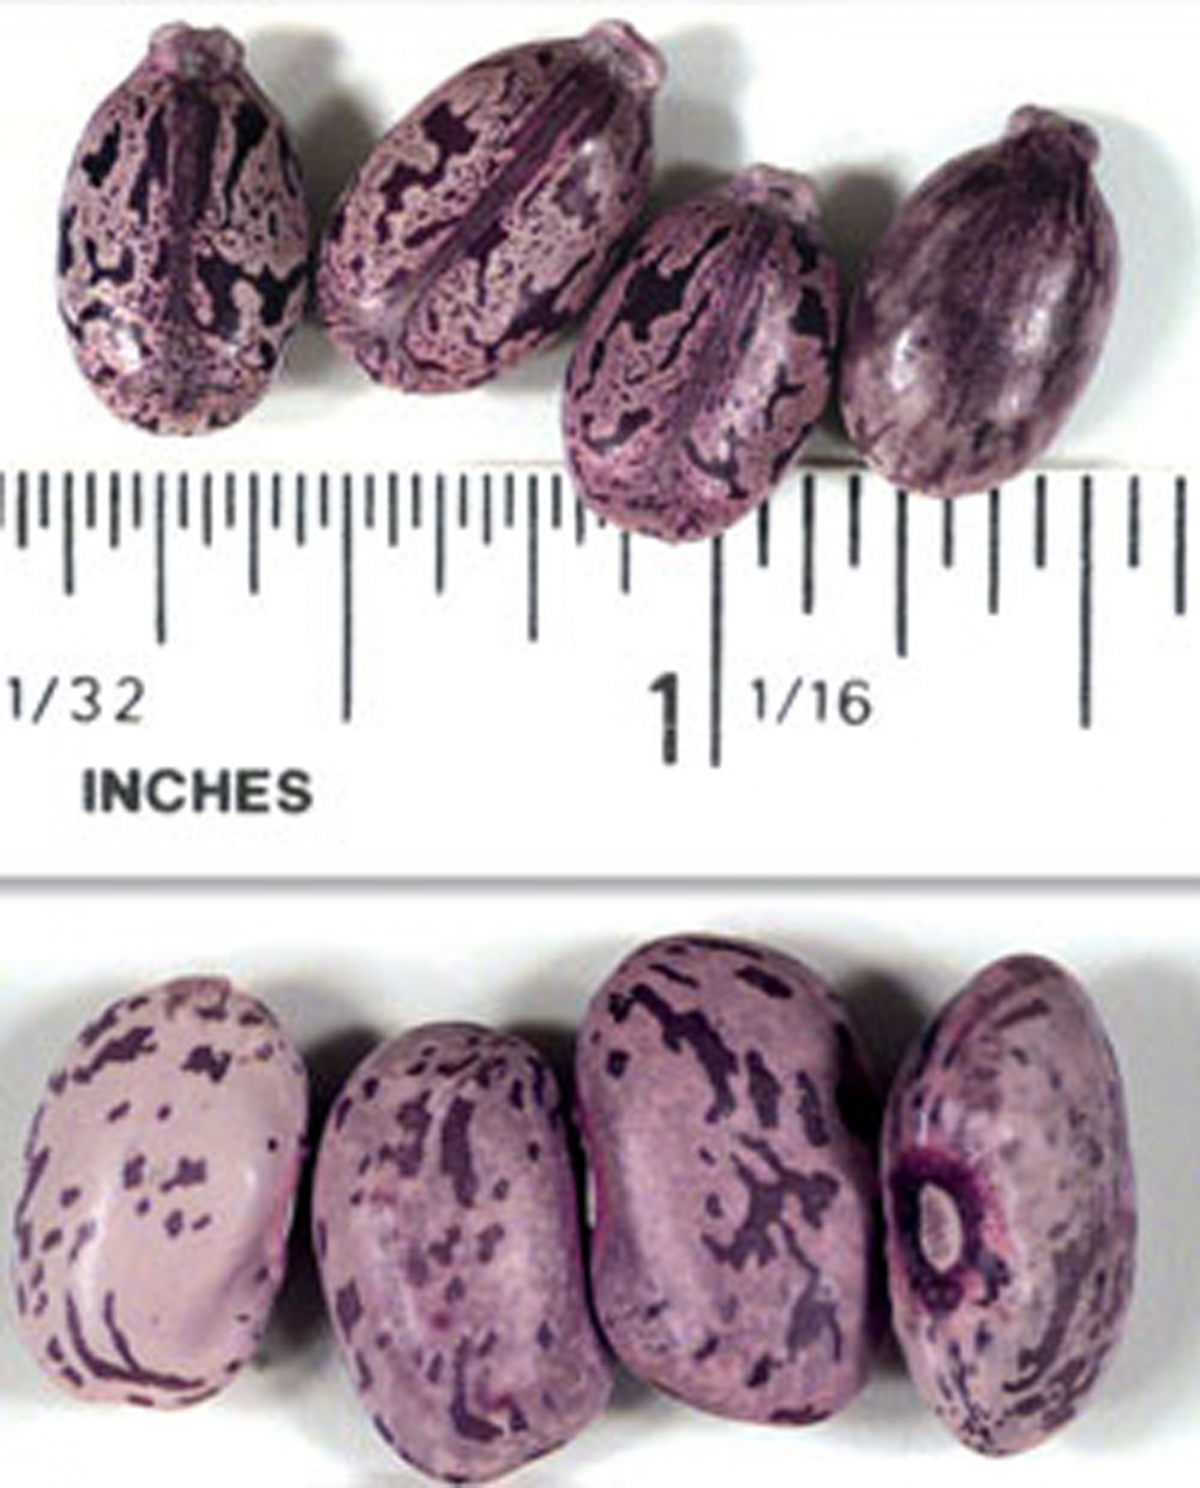 Castor beans, used in the production of ricin.